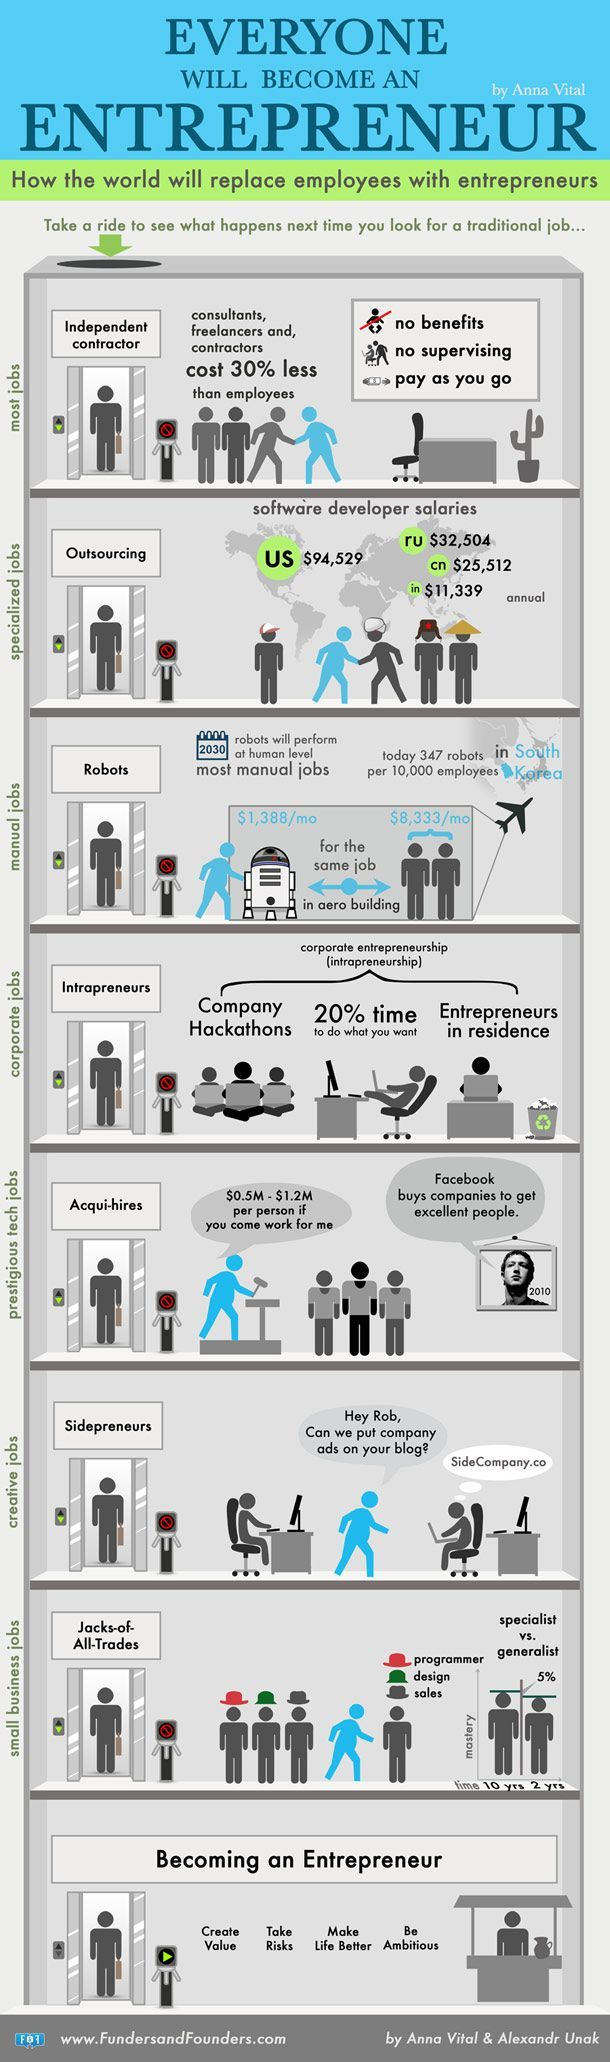 Why Everyone Will Have to Become an Entrepreneur (Infographic)   Entrepreneur.com